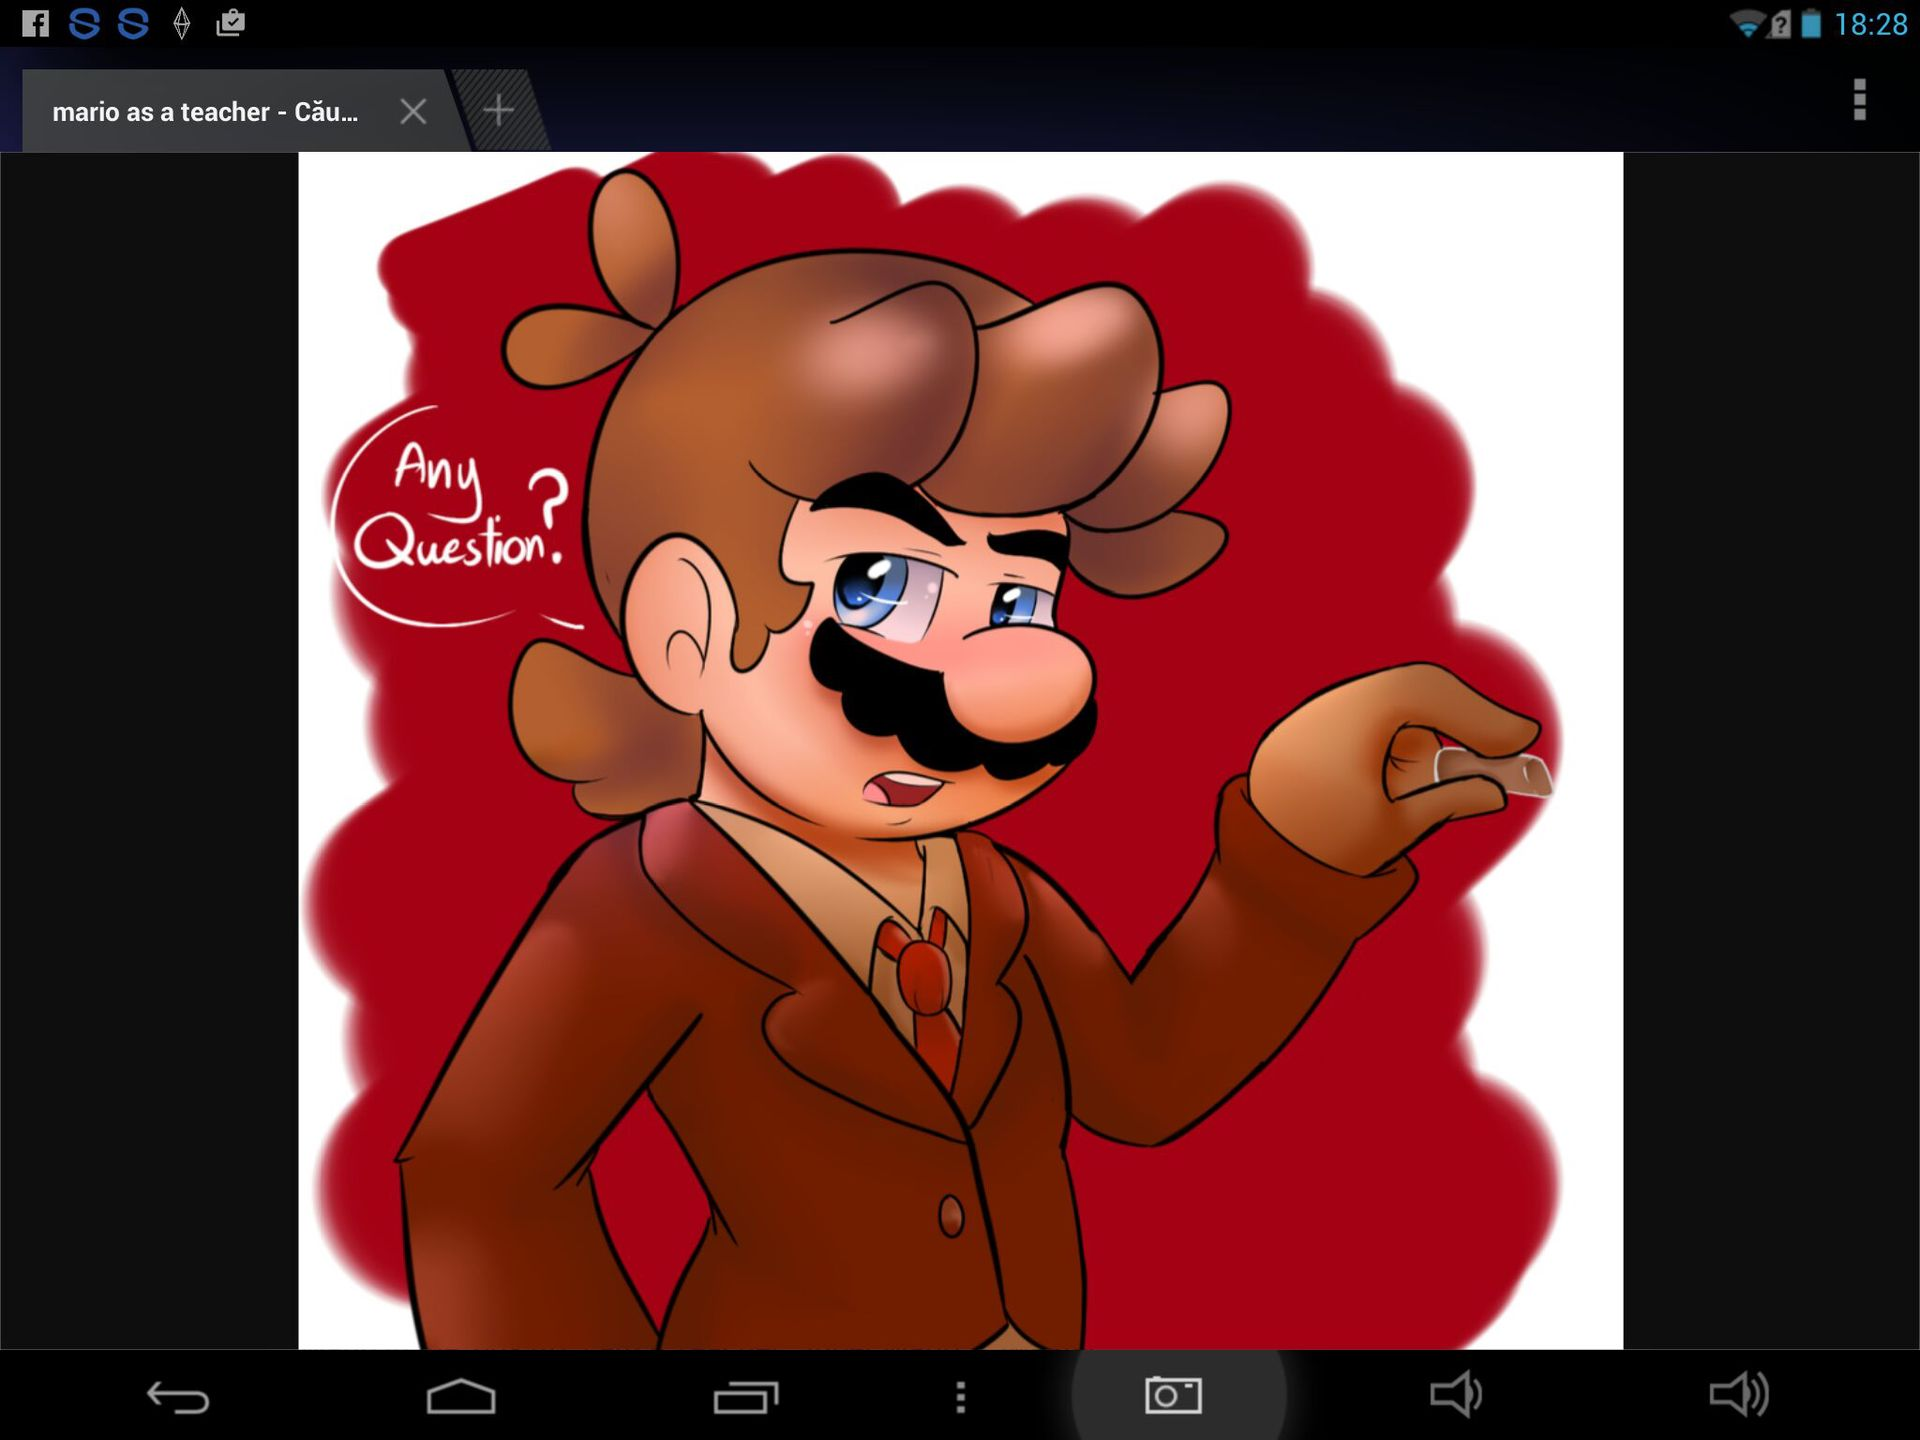 Mario(teacher) X Chica(you) A love like this is hard to find - the